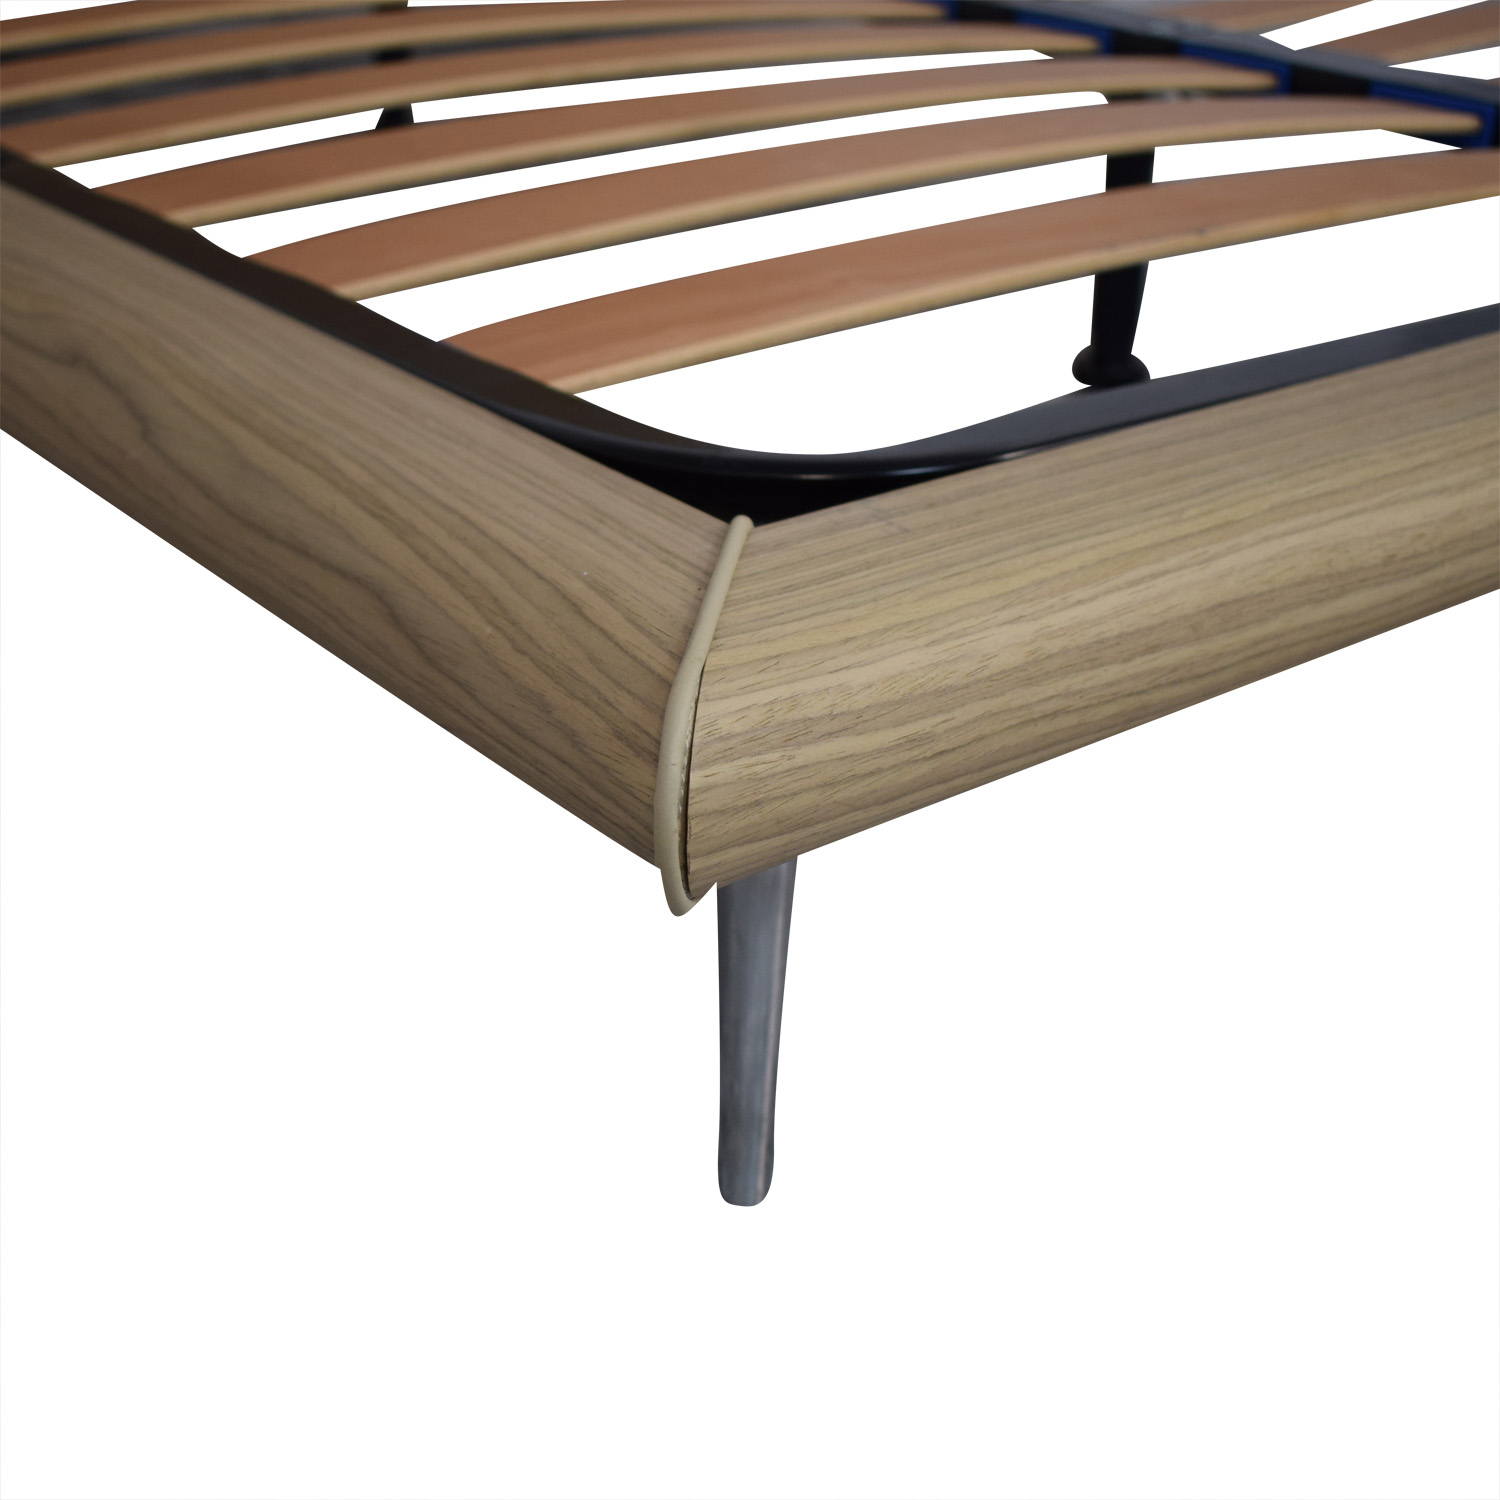 Calligaris Queen Dixie Bed Calligaris